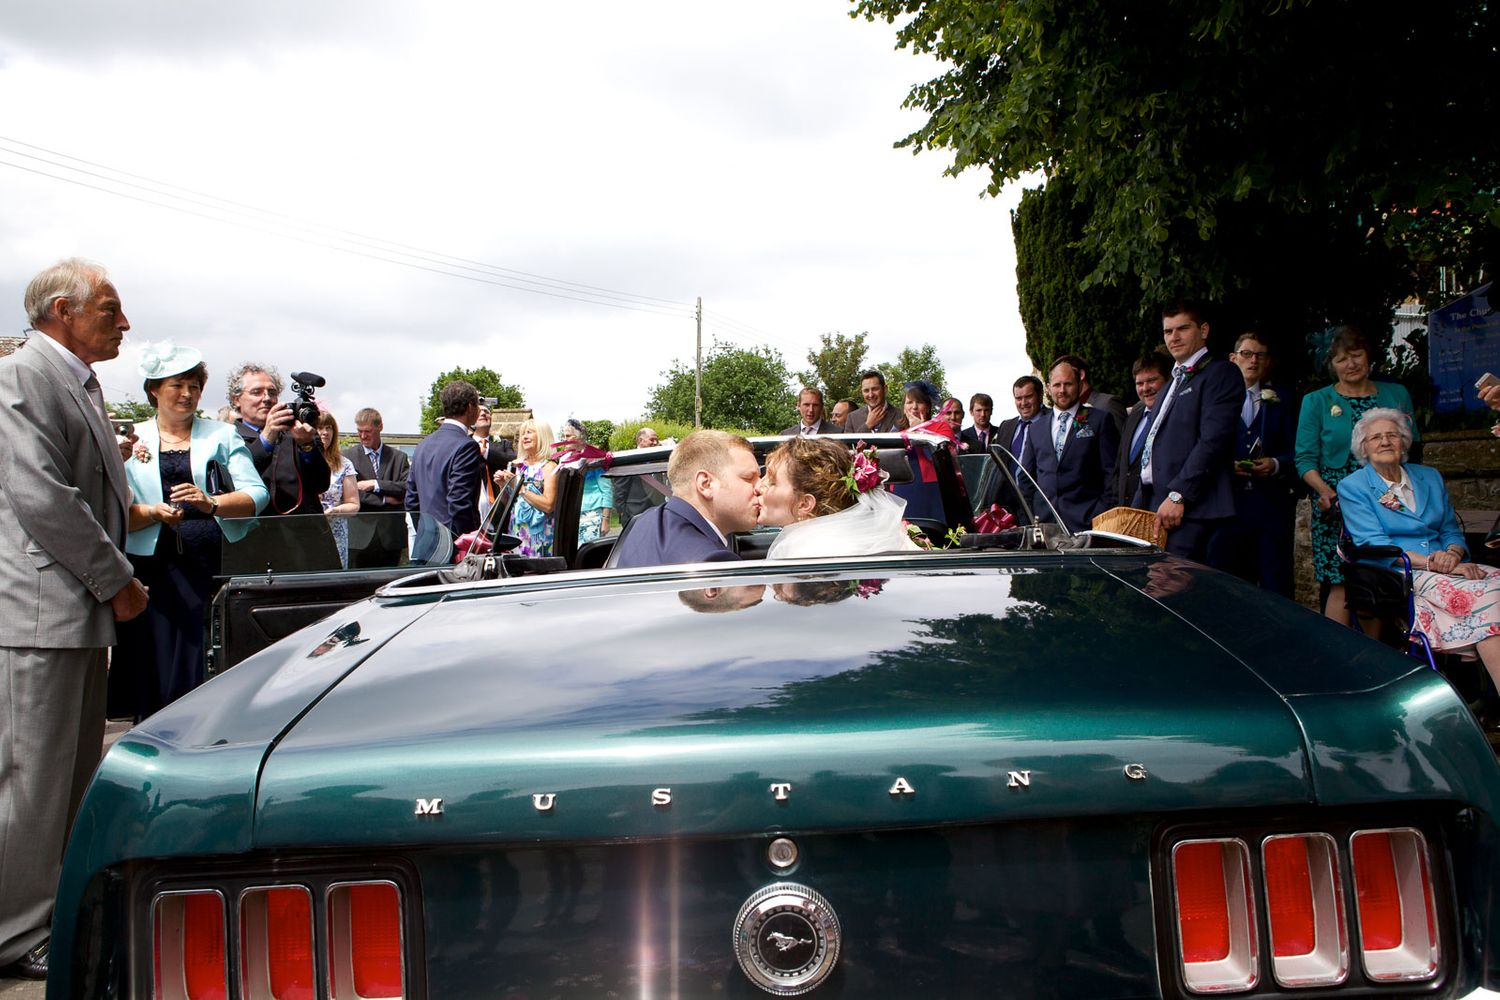 bride and groom kiss in the back of a vintage car at this wedding in Somerset